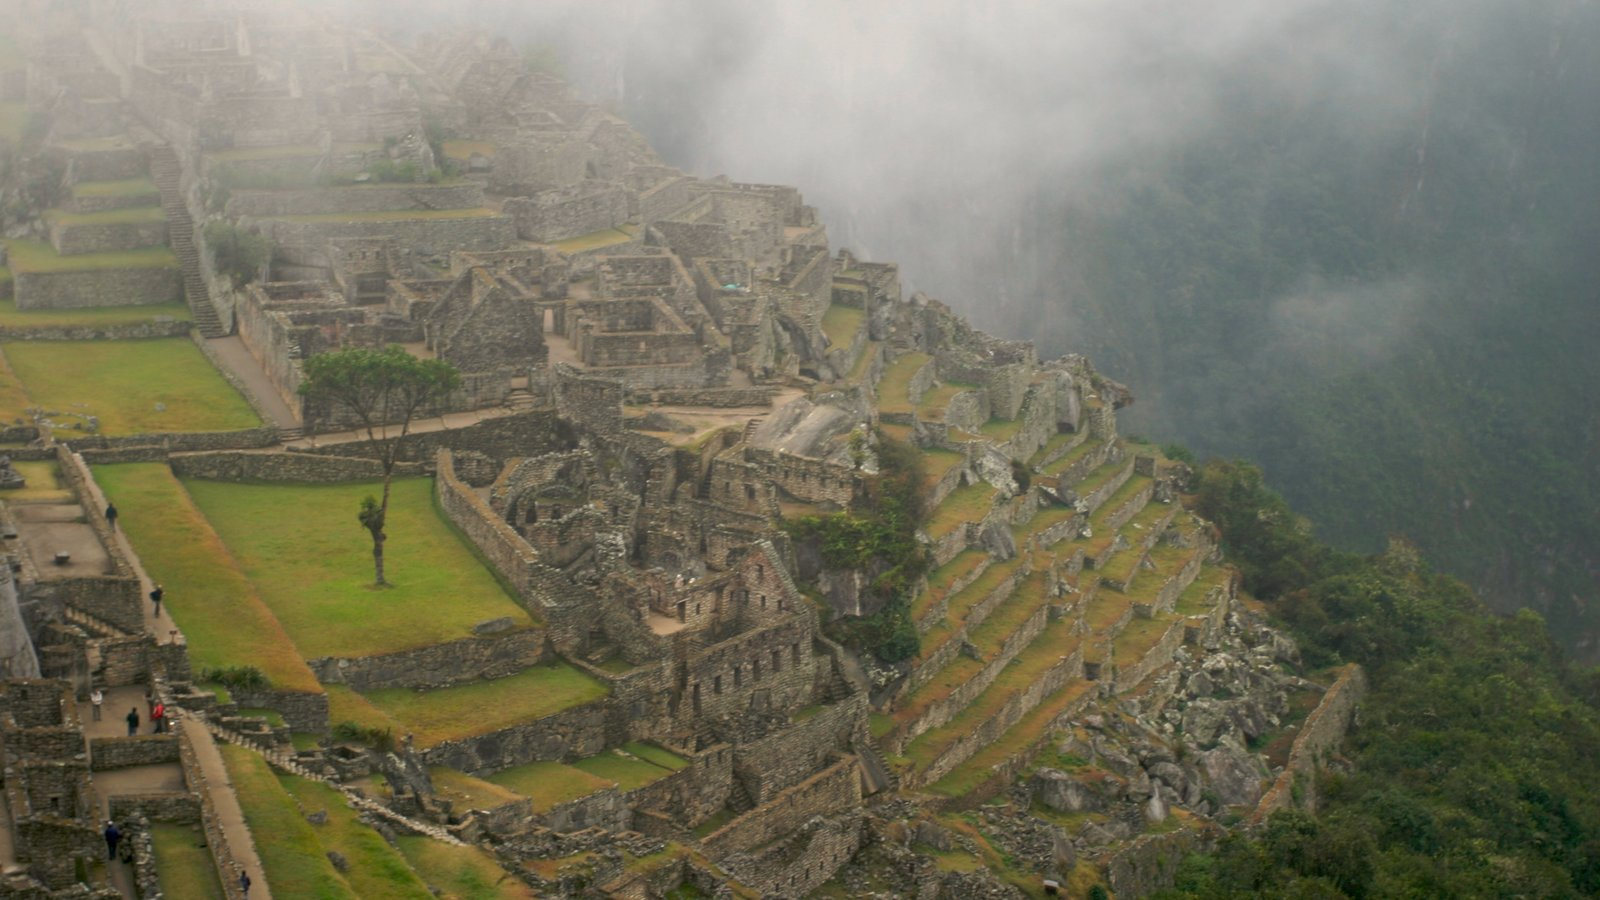 Machu Picchu which includes mountains, mist or fog and building ruins